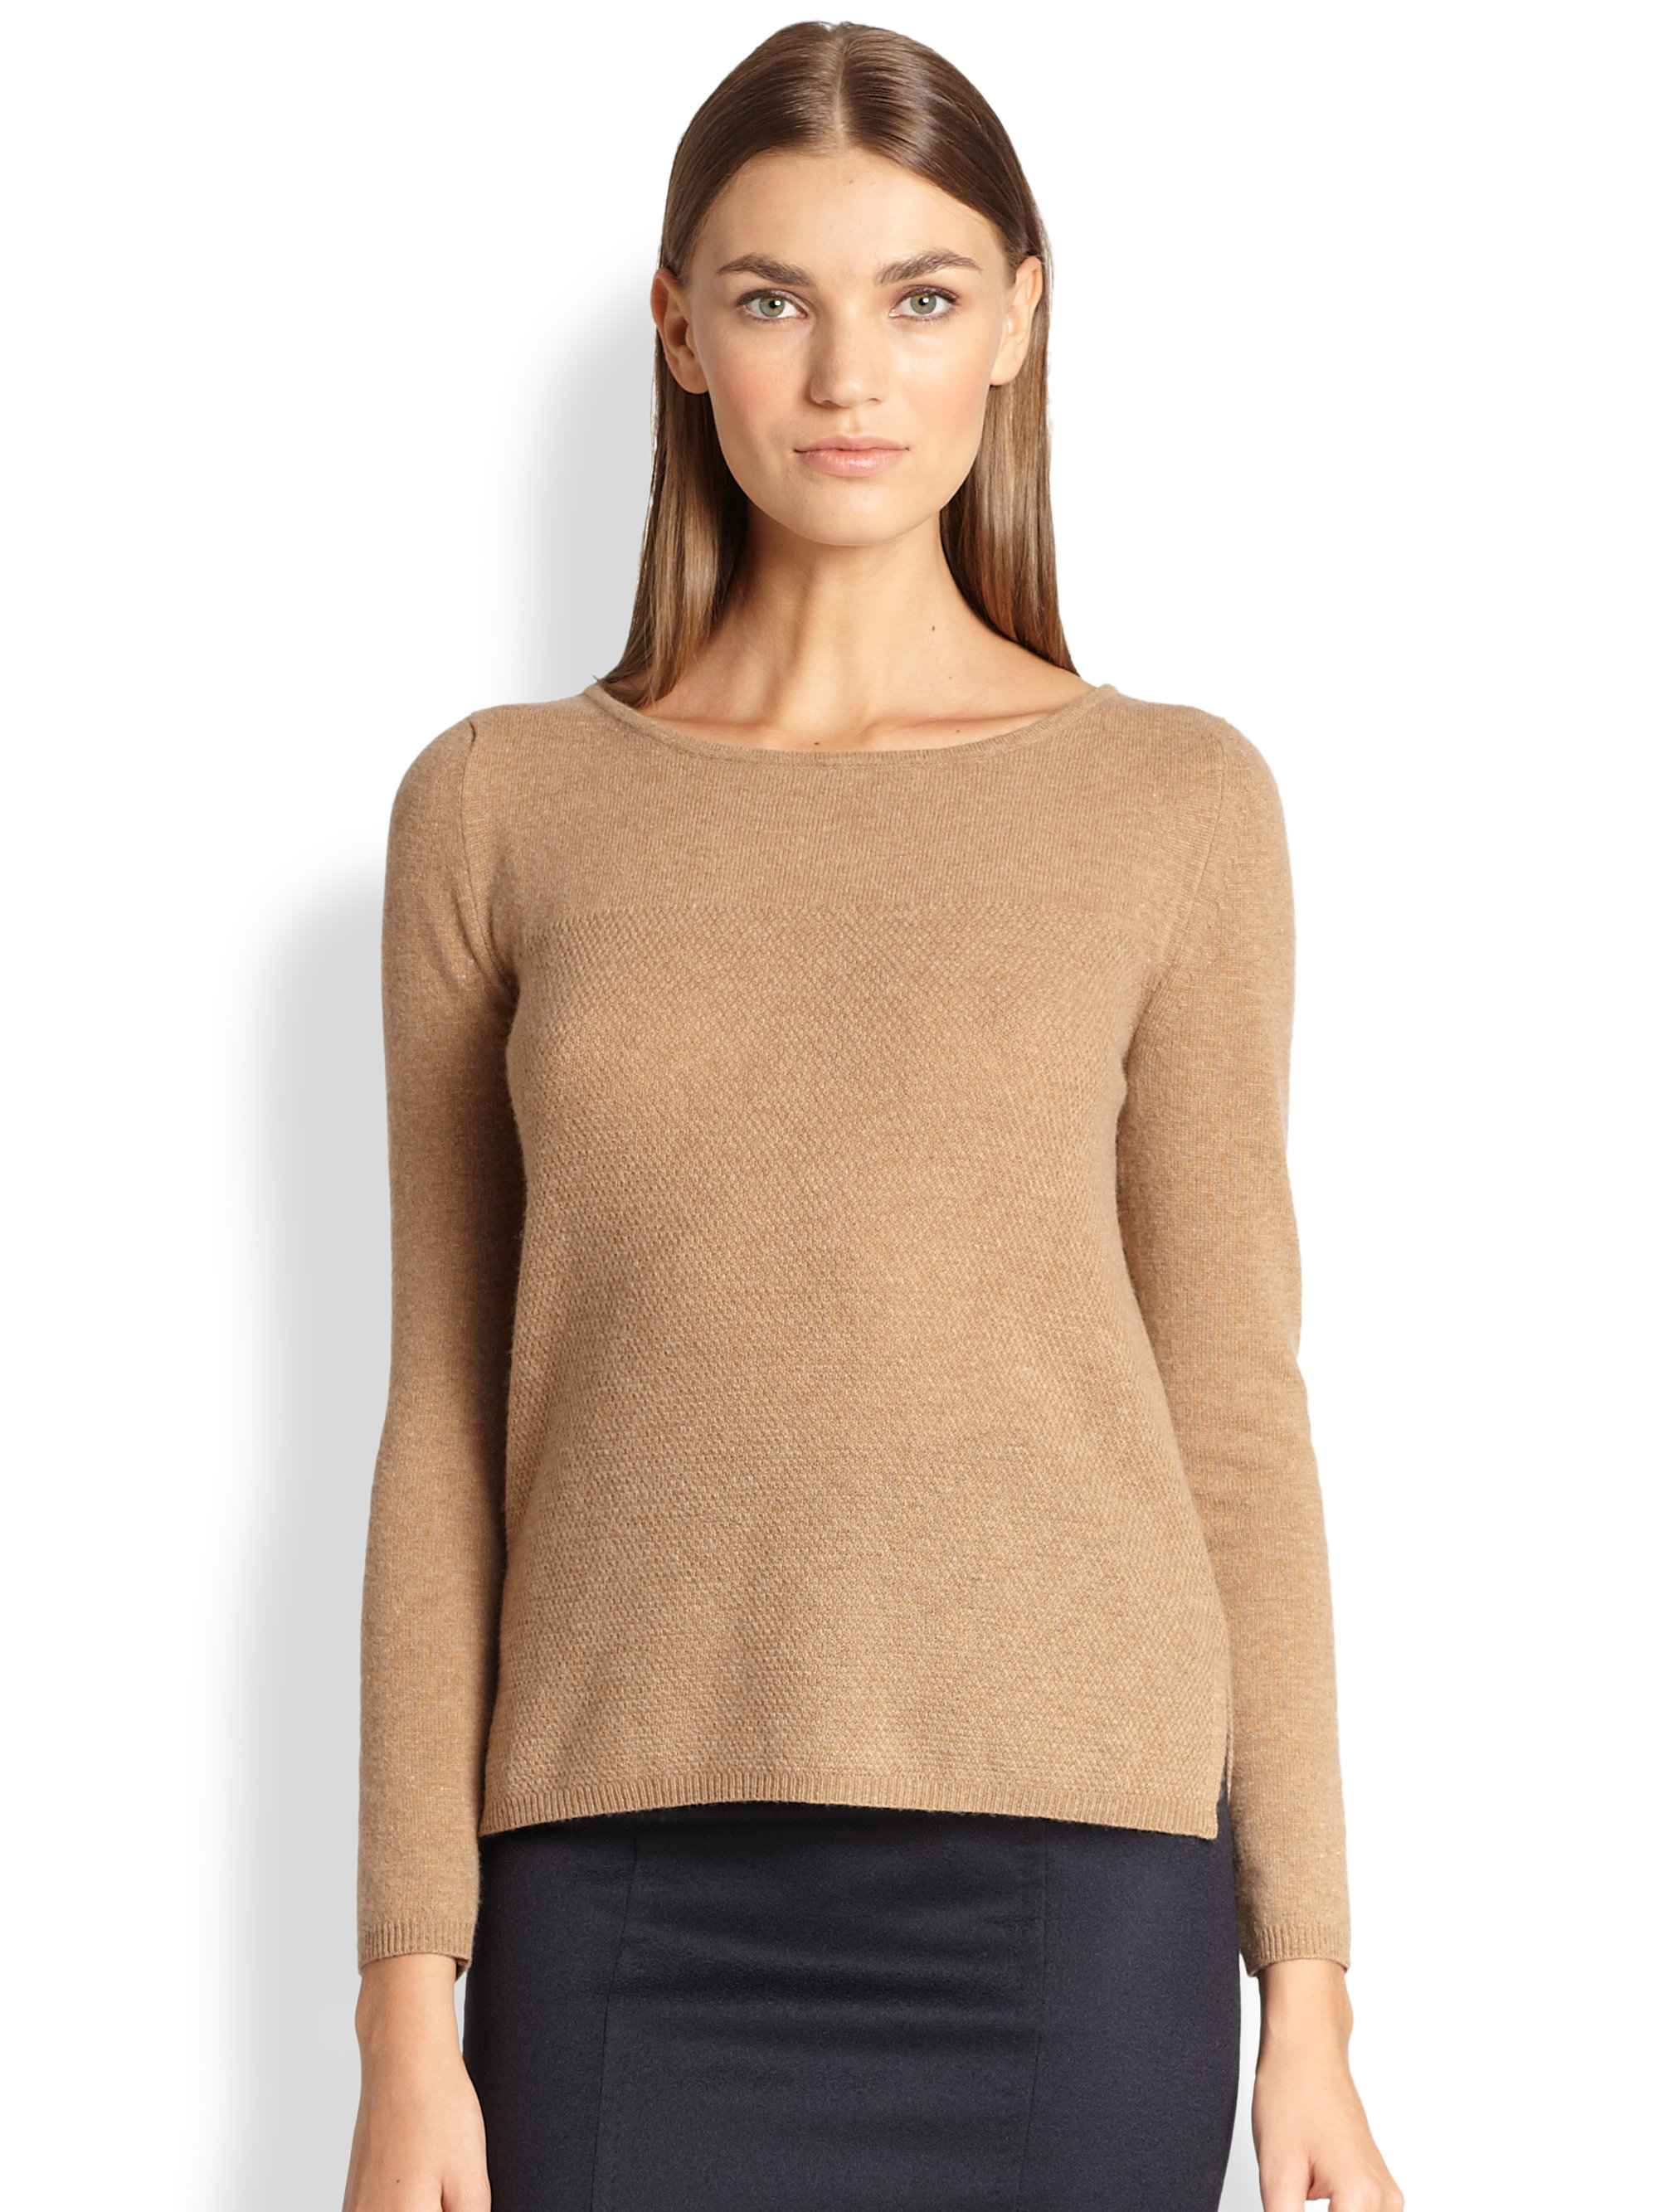 Max mara Textured Wool Cashmere Sweater in Brown | Lyst